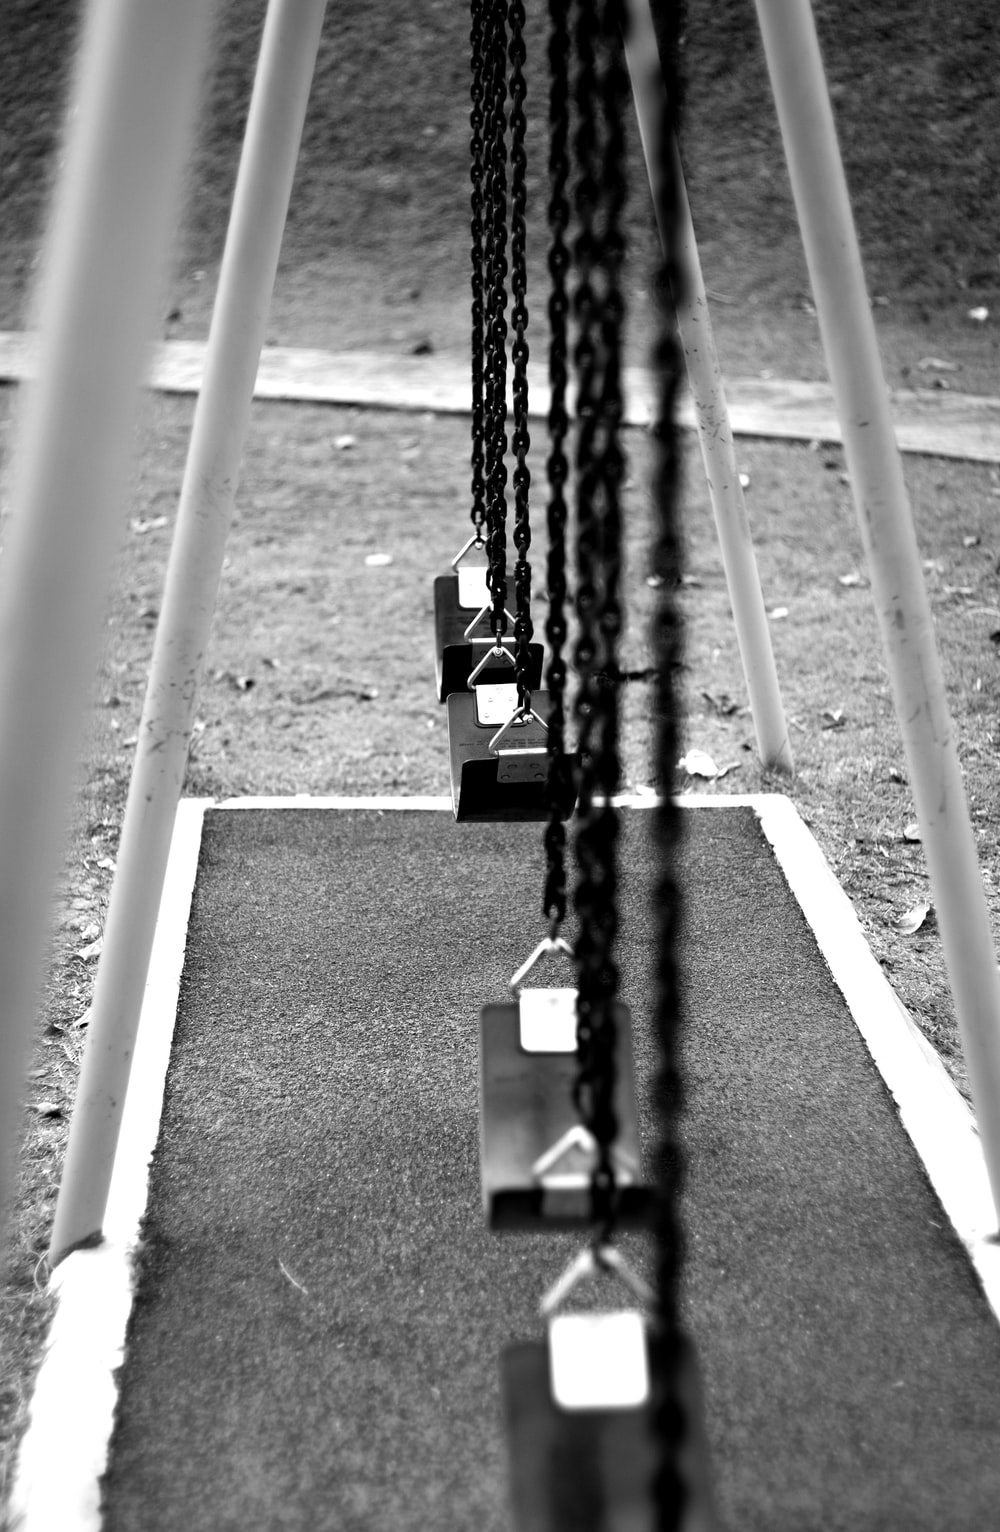 grayscale photography of swings